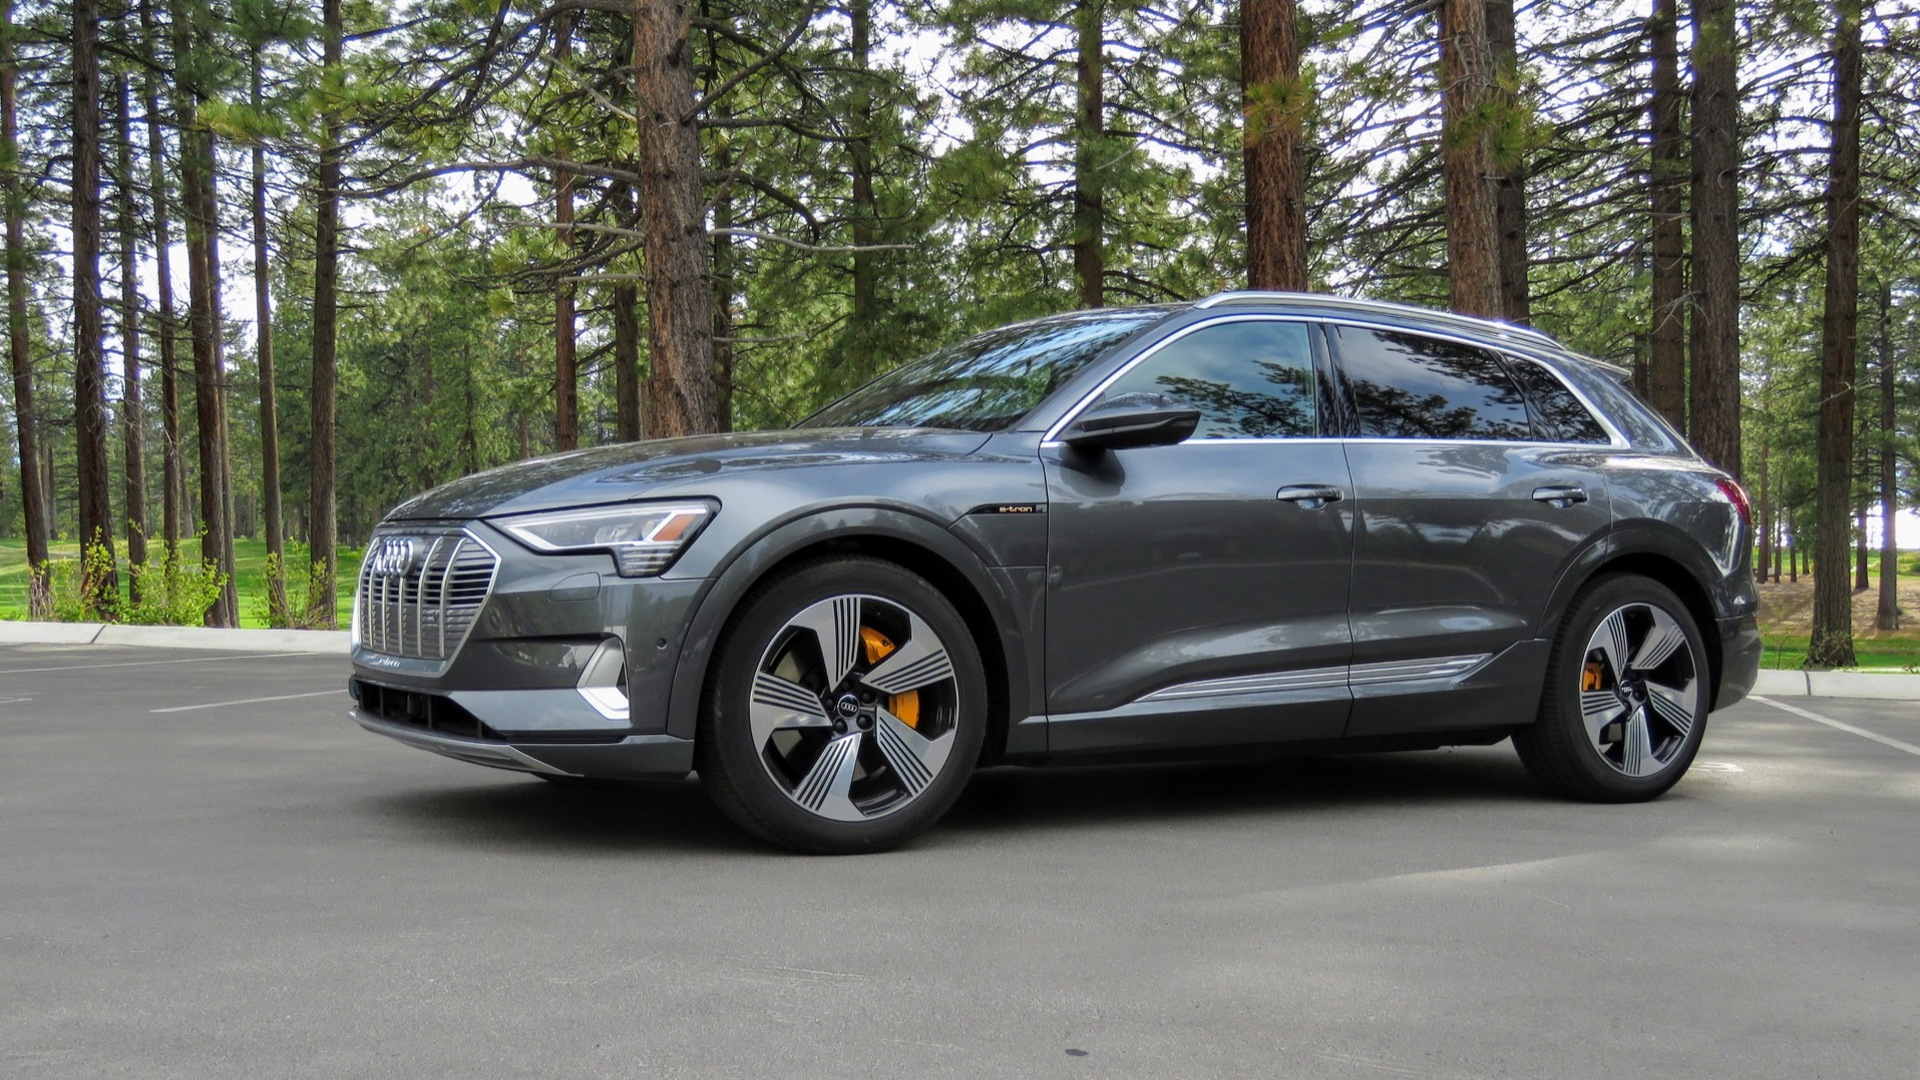 What matters most when fast-charging an electric car on a